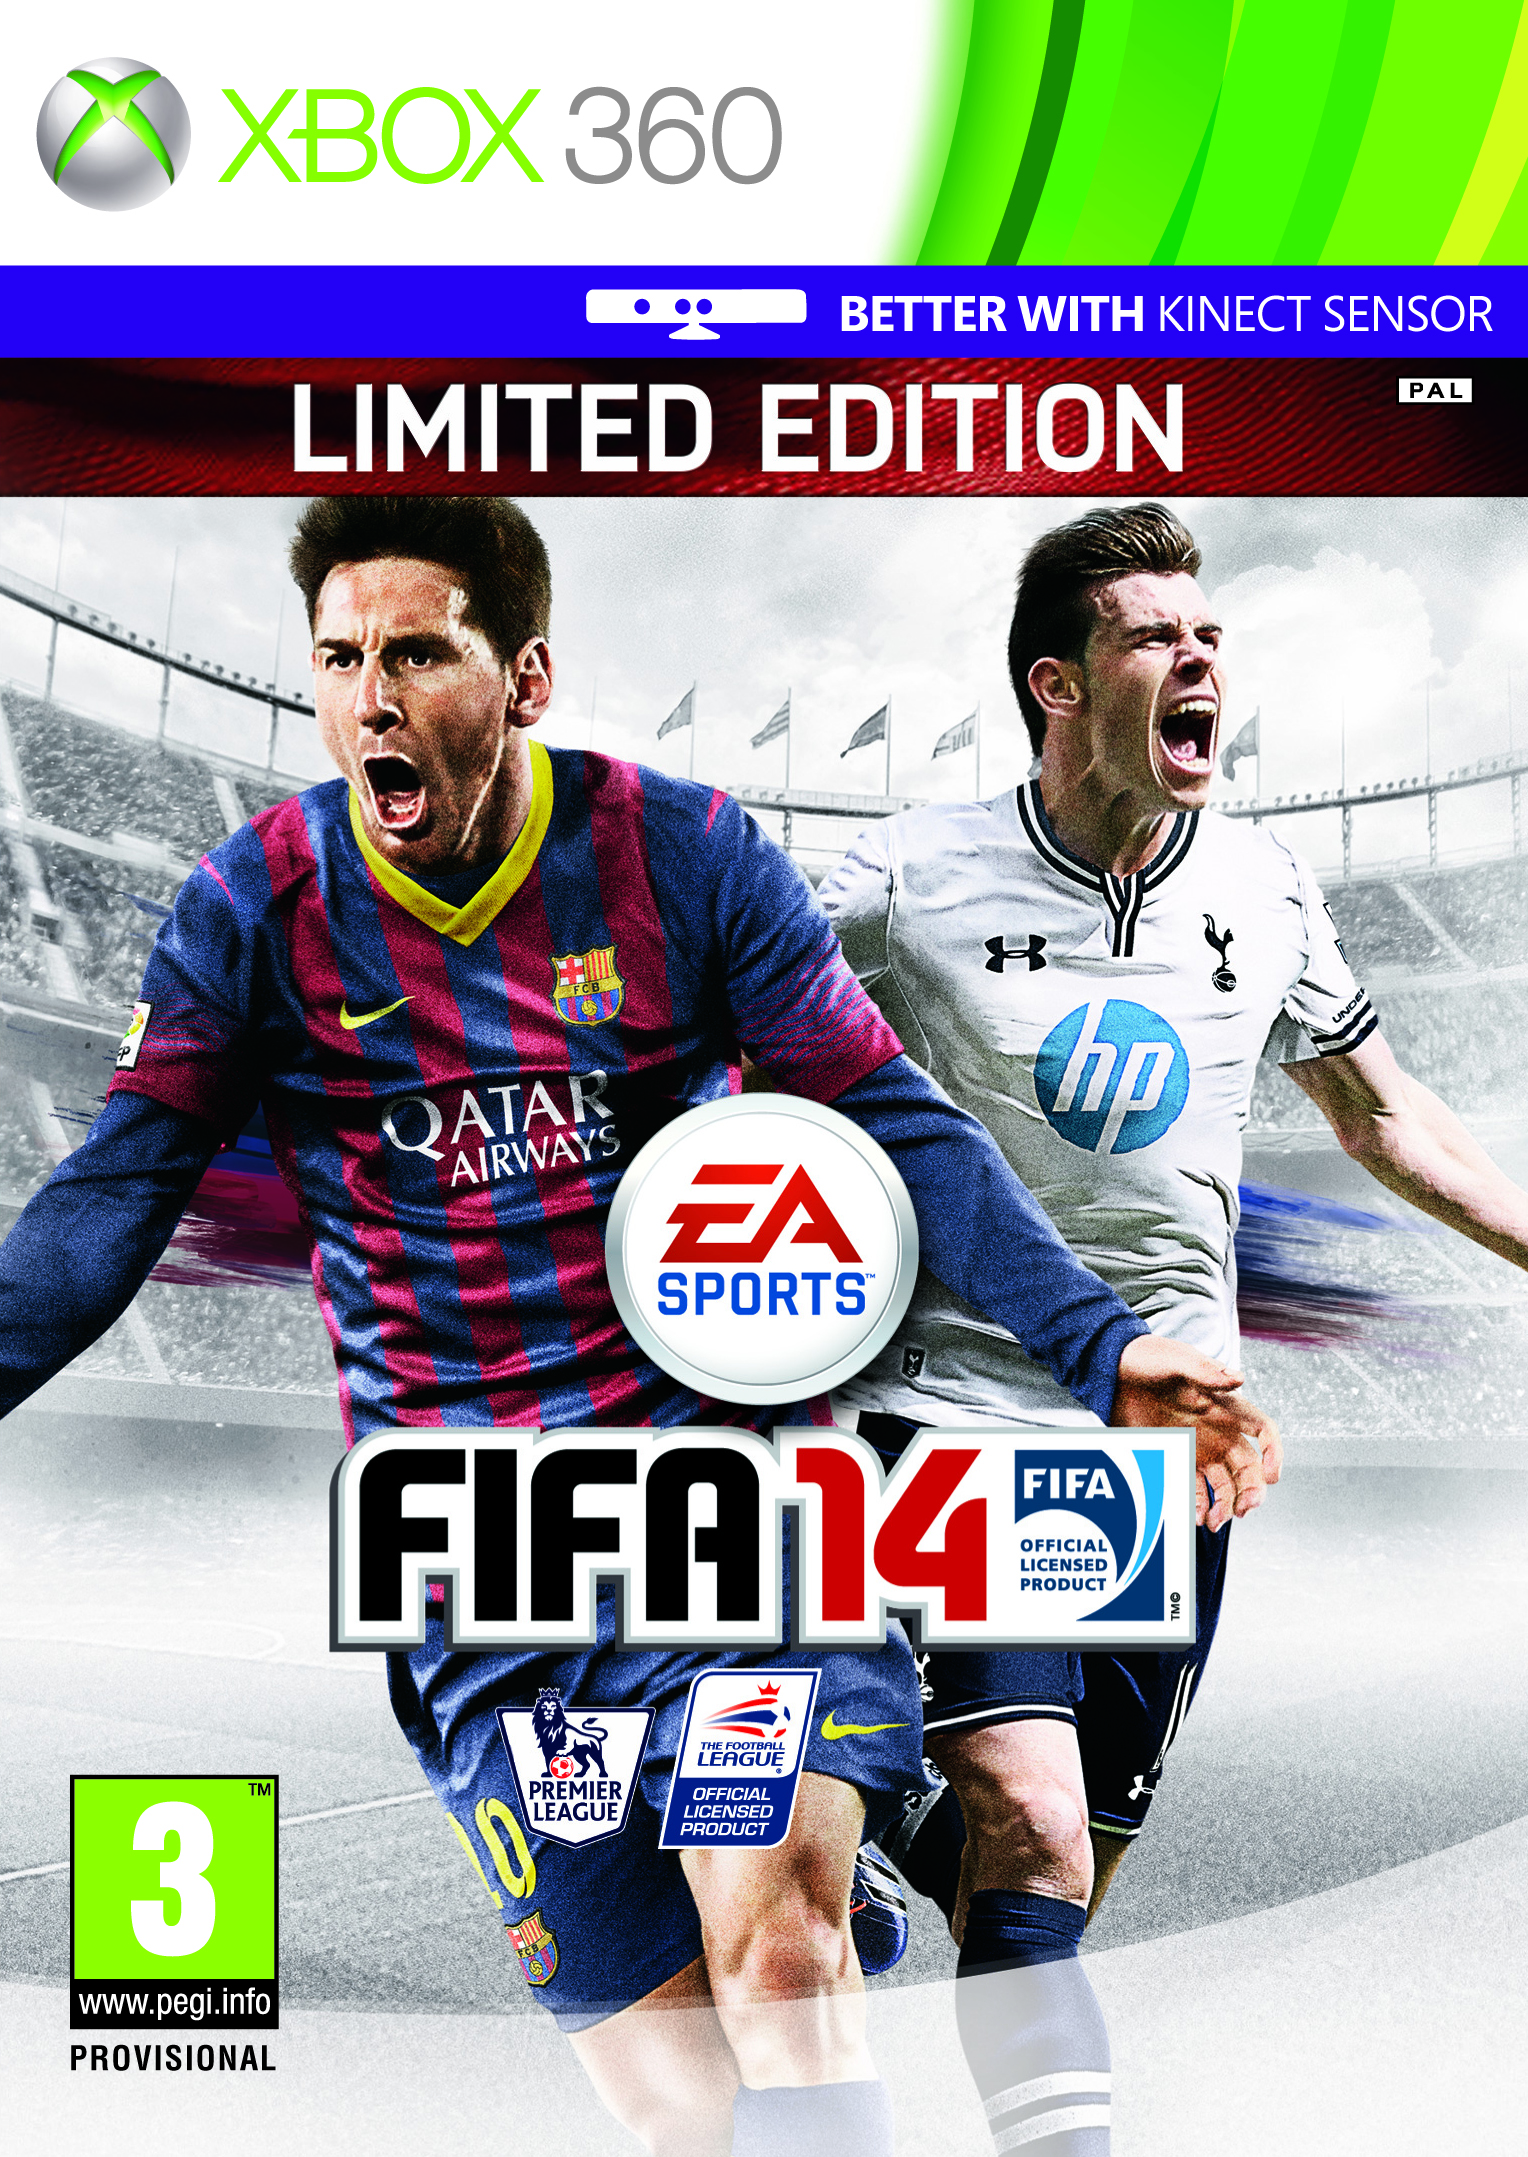 Gareth Bale FIFA 14 UK Cover Star